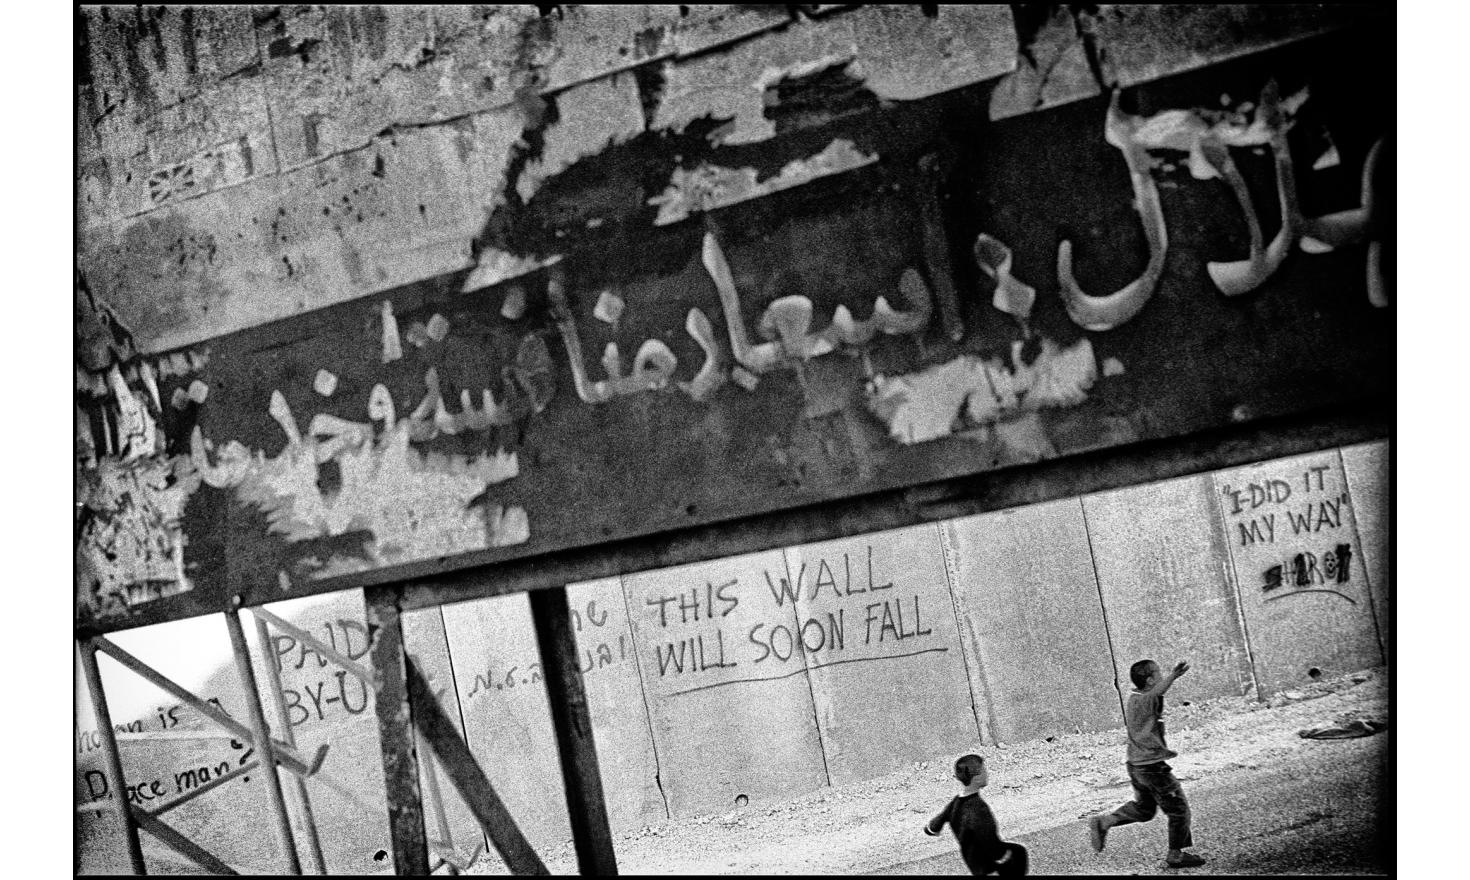 The wall in Abu Dis, a suburb of Jerusalem. Abu Dis, Israel. April 2004.